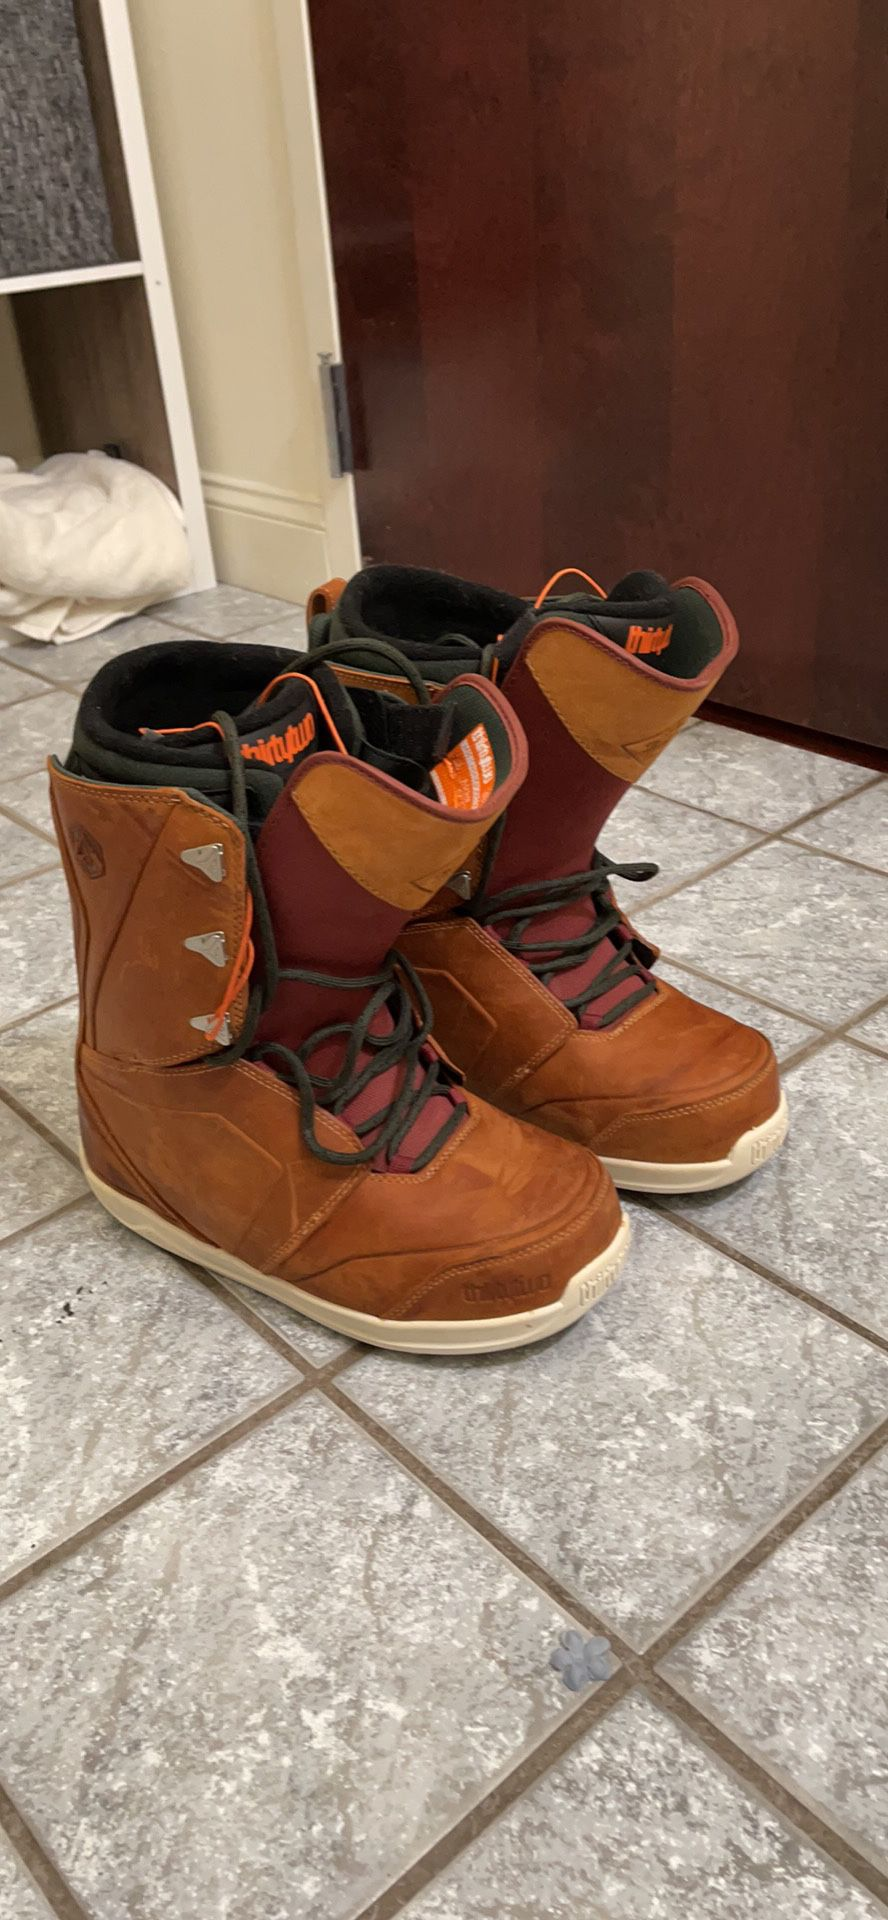 ThirtyTwo Snowboard Boots (size 11 Men's)